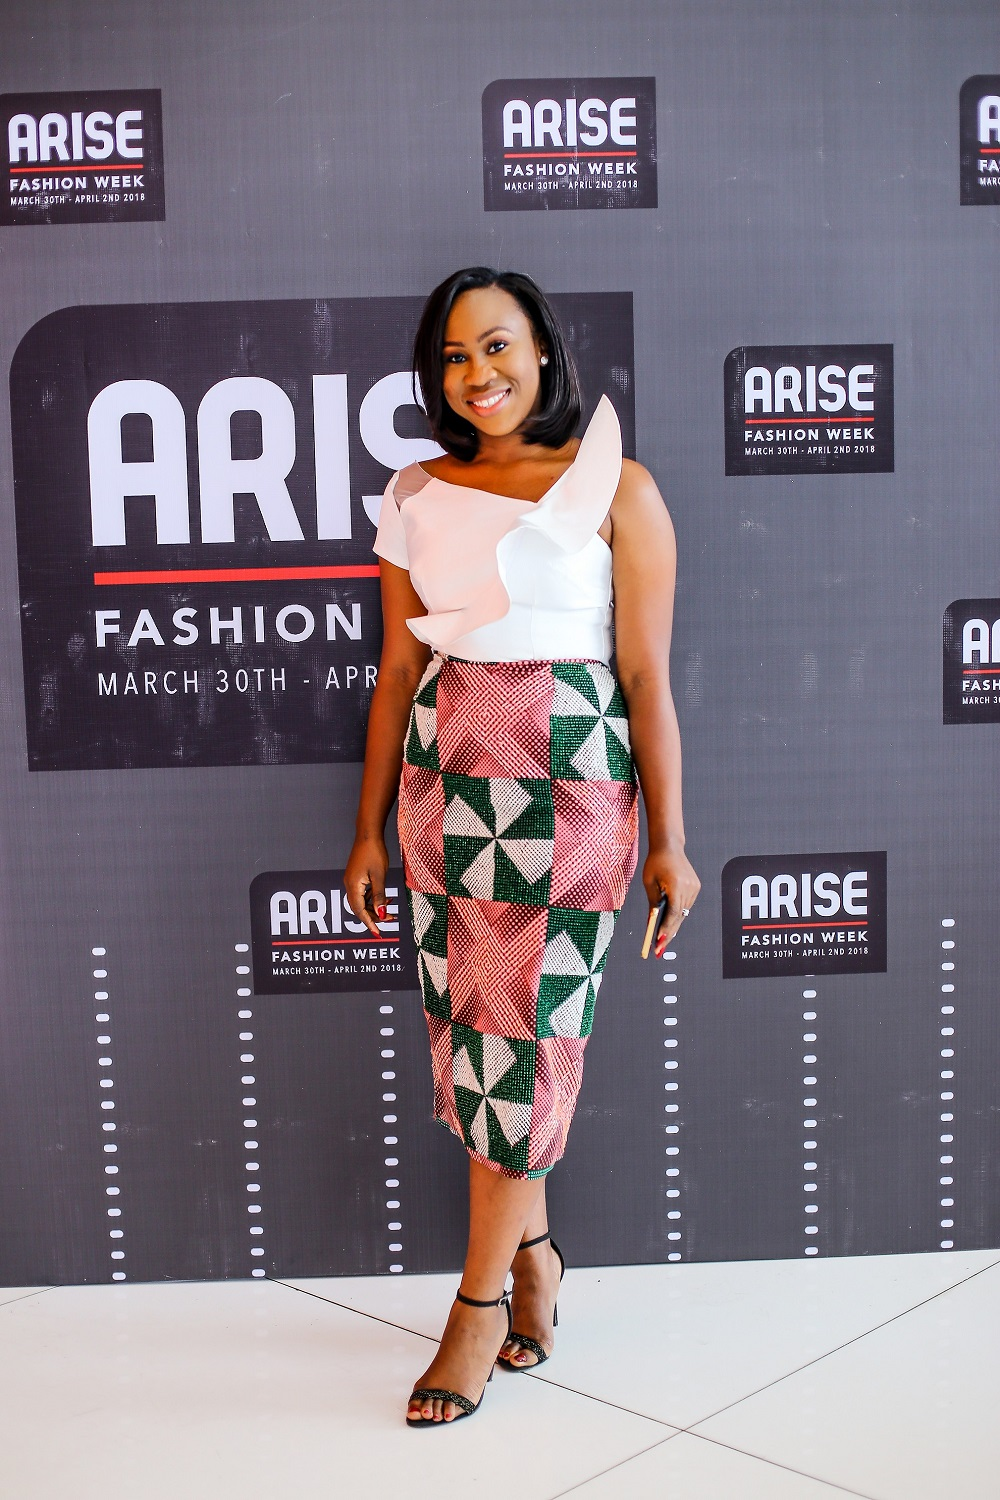 ARISE Fashion Week Unveils 2018 Showcasing Designers at Exclusive Press Party